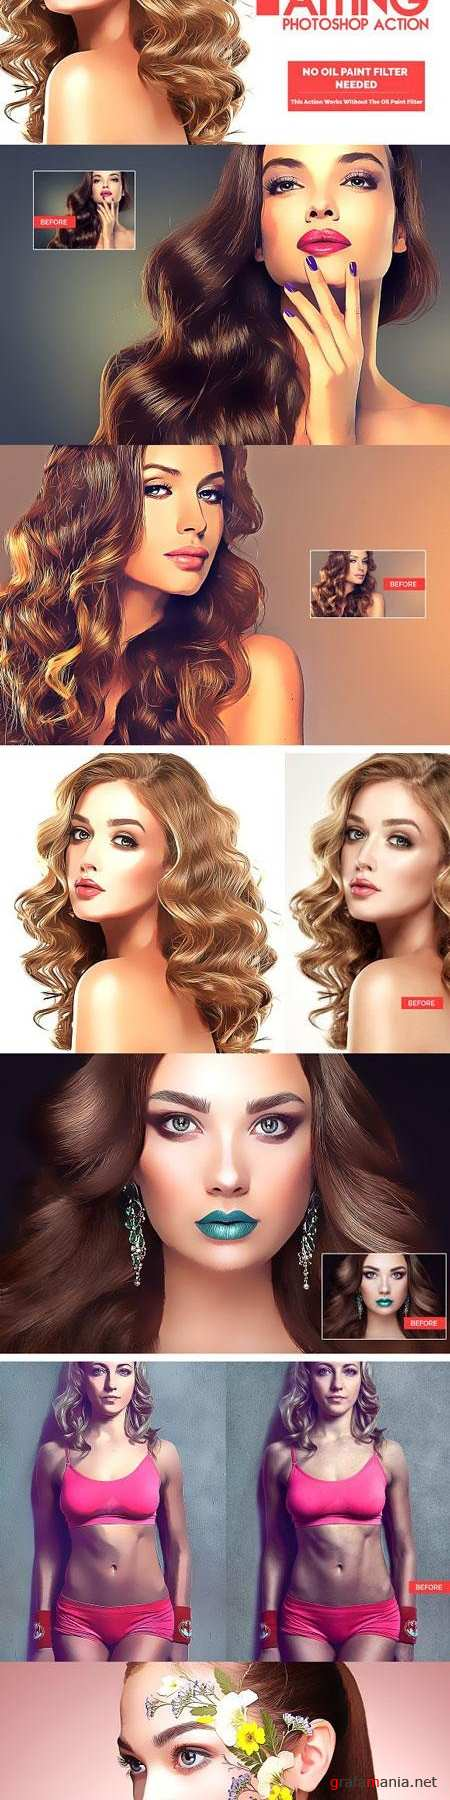 Portrait Painting Photoshop Action 3194274